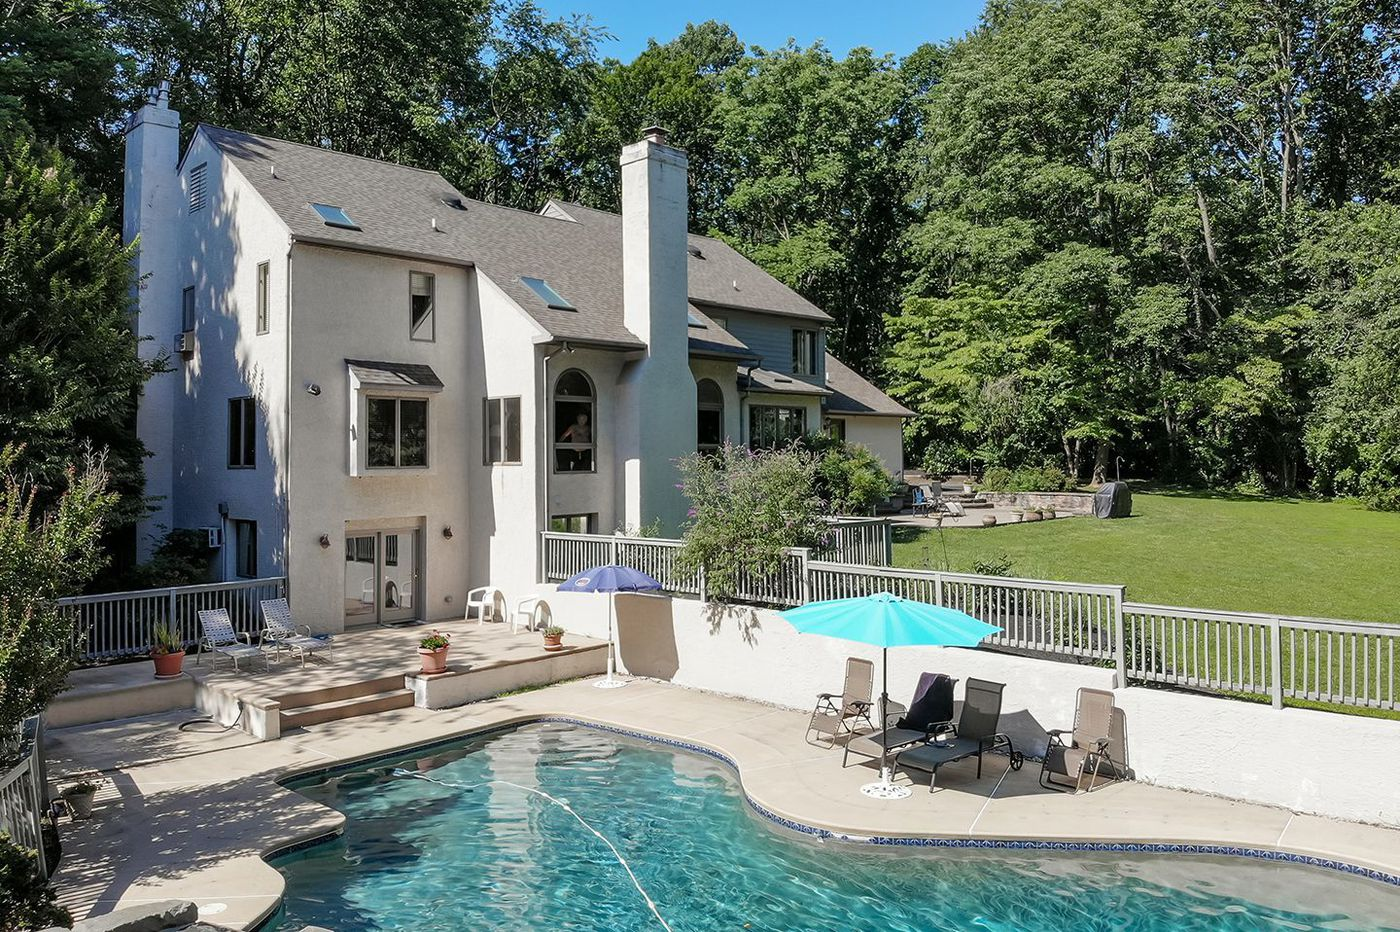 On the market: An estate home in Chadds Ford for $950,000